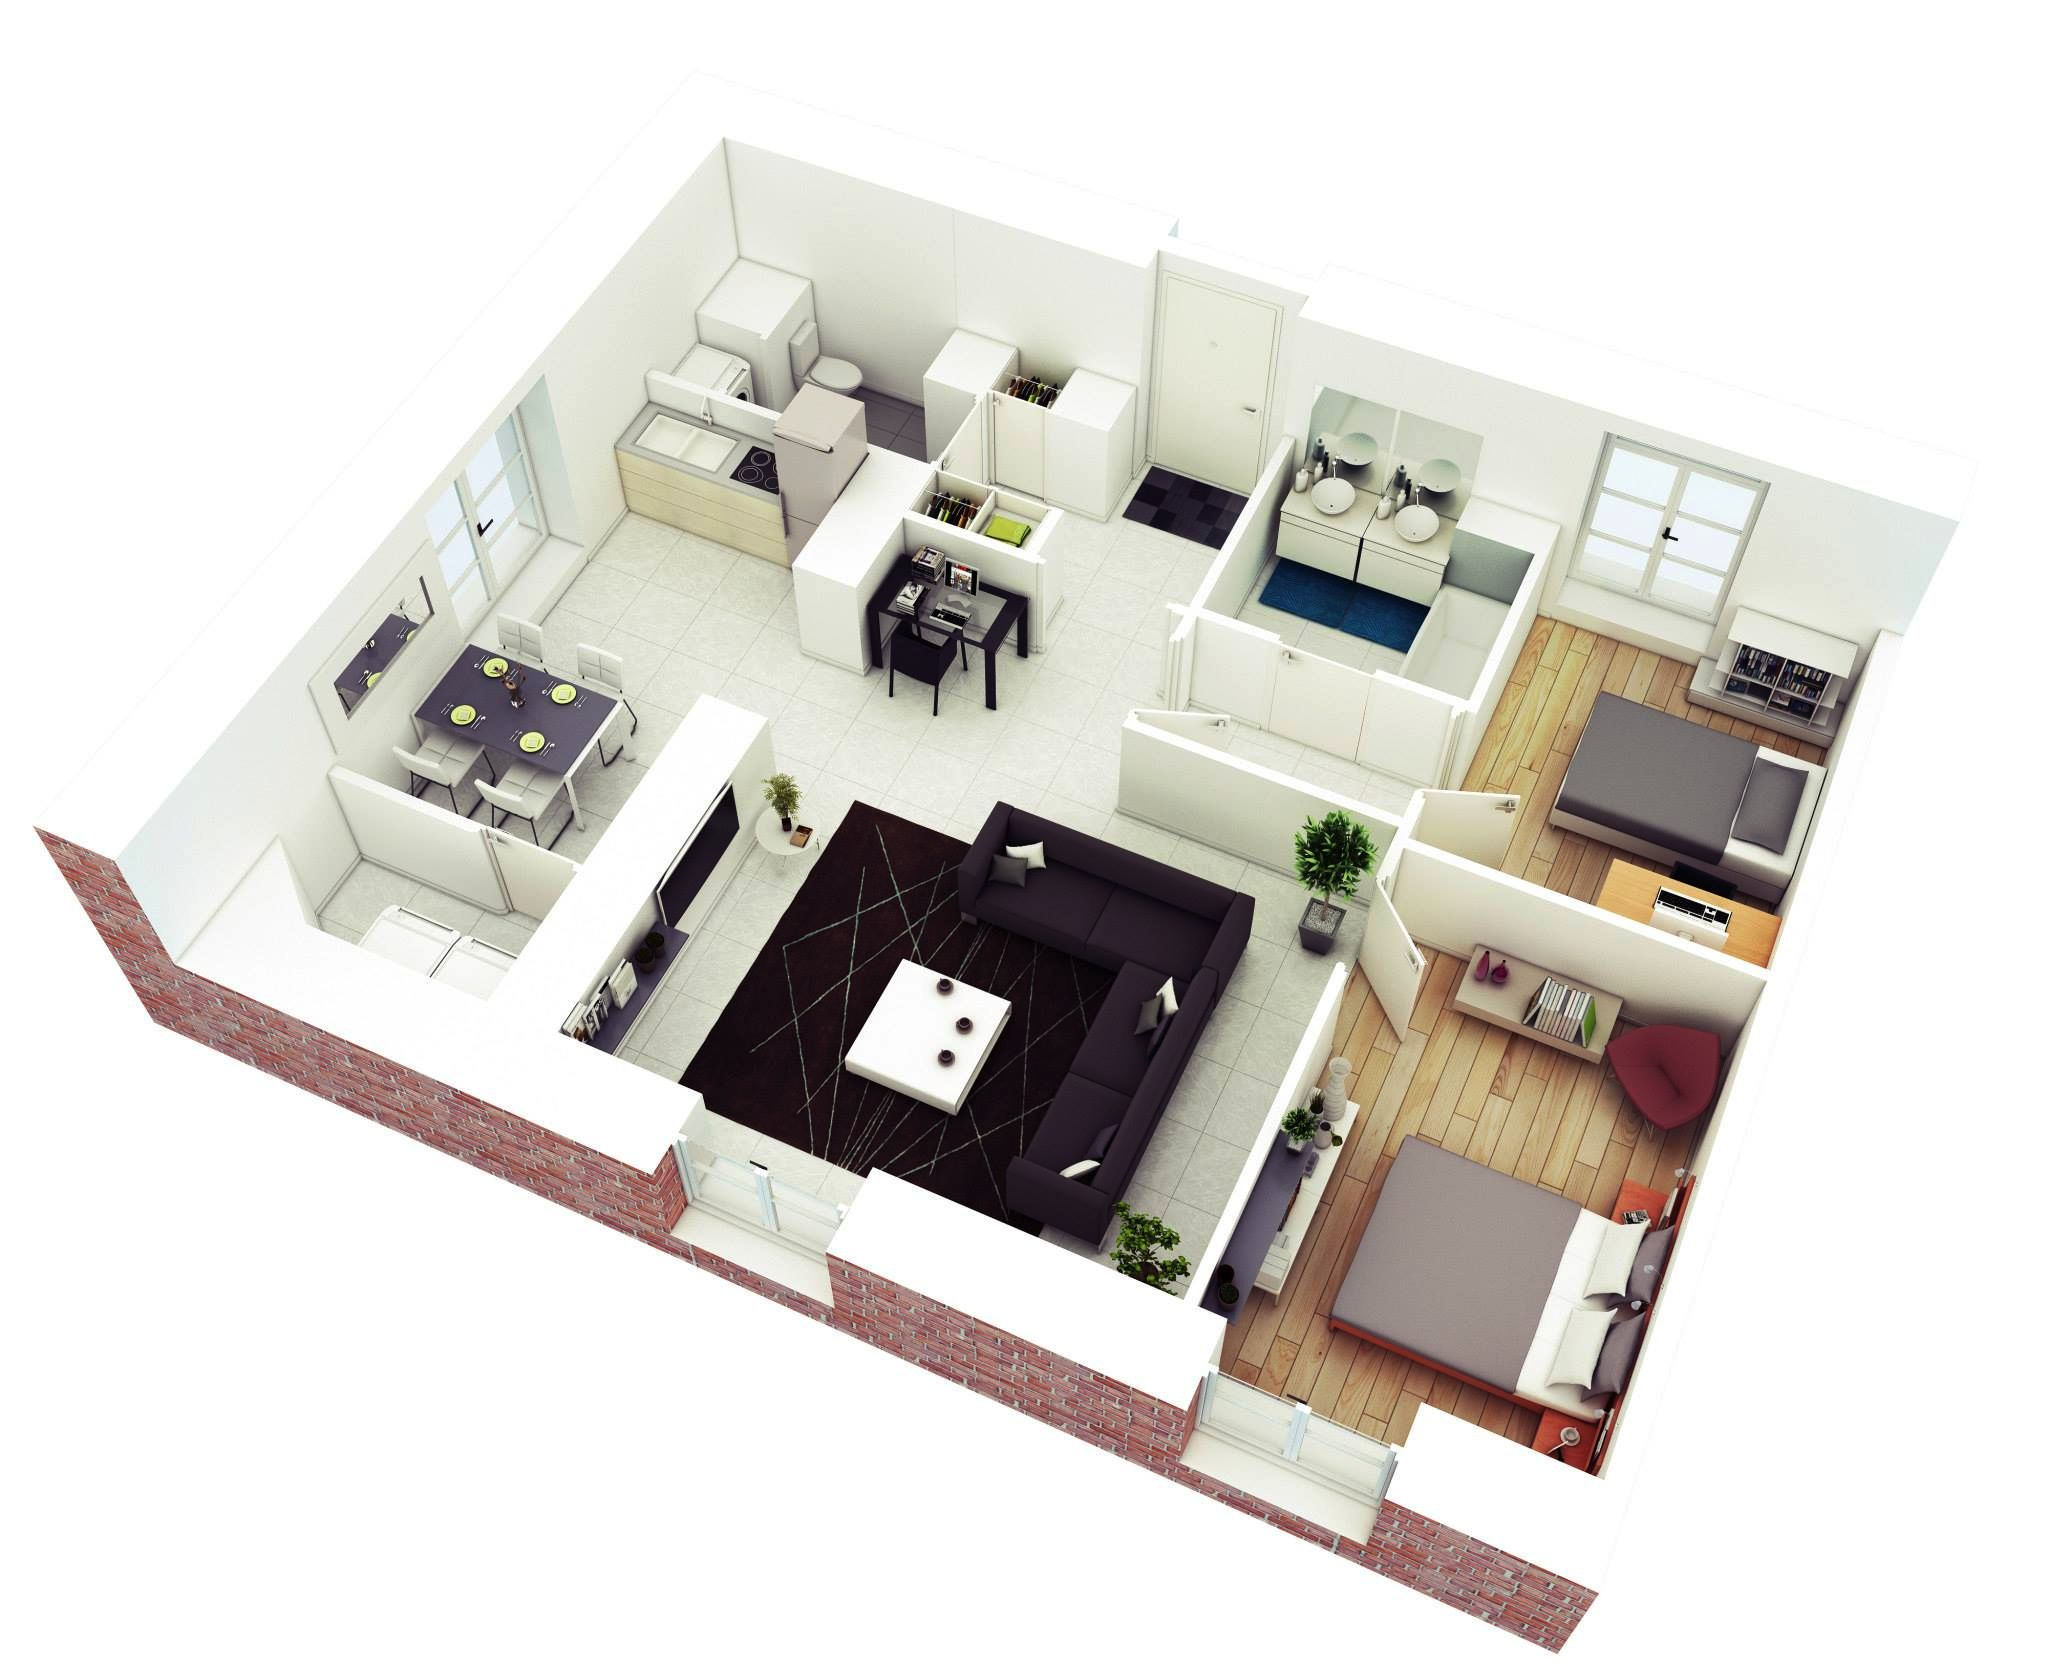 Home Design Floor Plan Understanding 3d Floor Plans And Finding The Right Layout For You